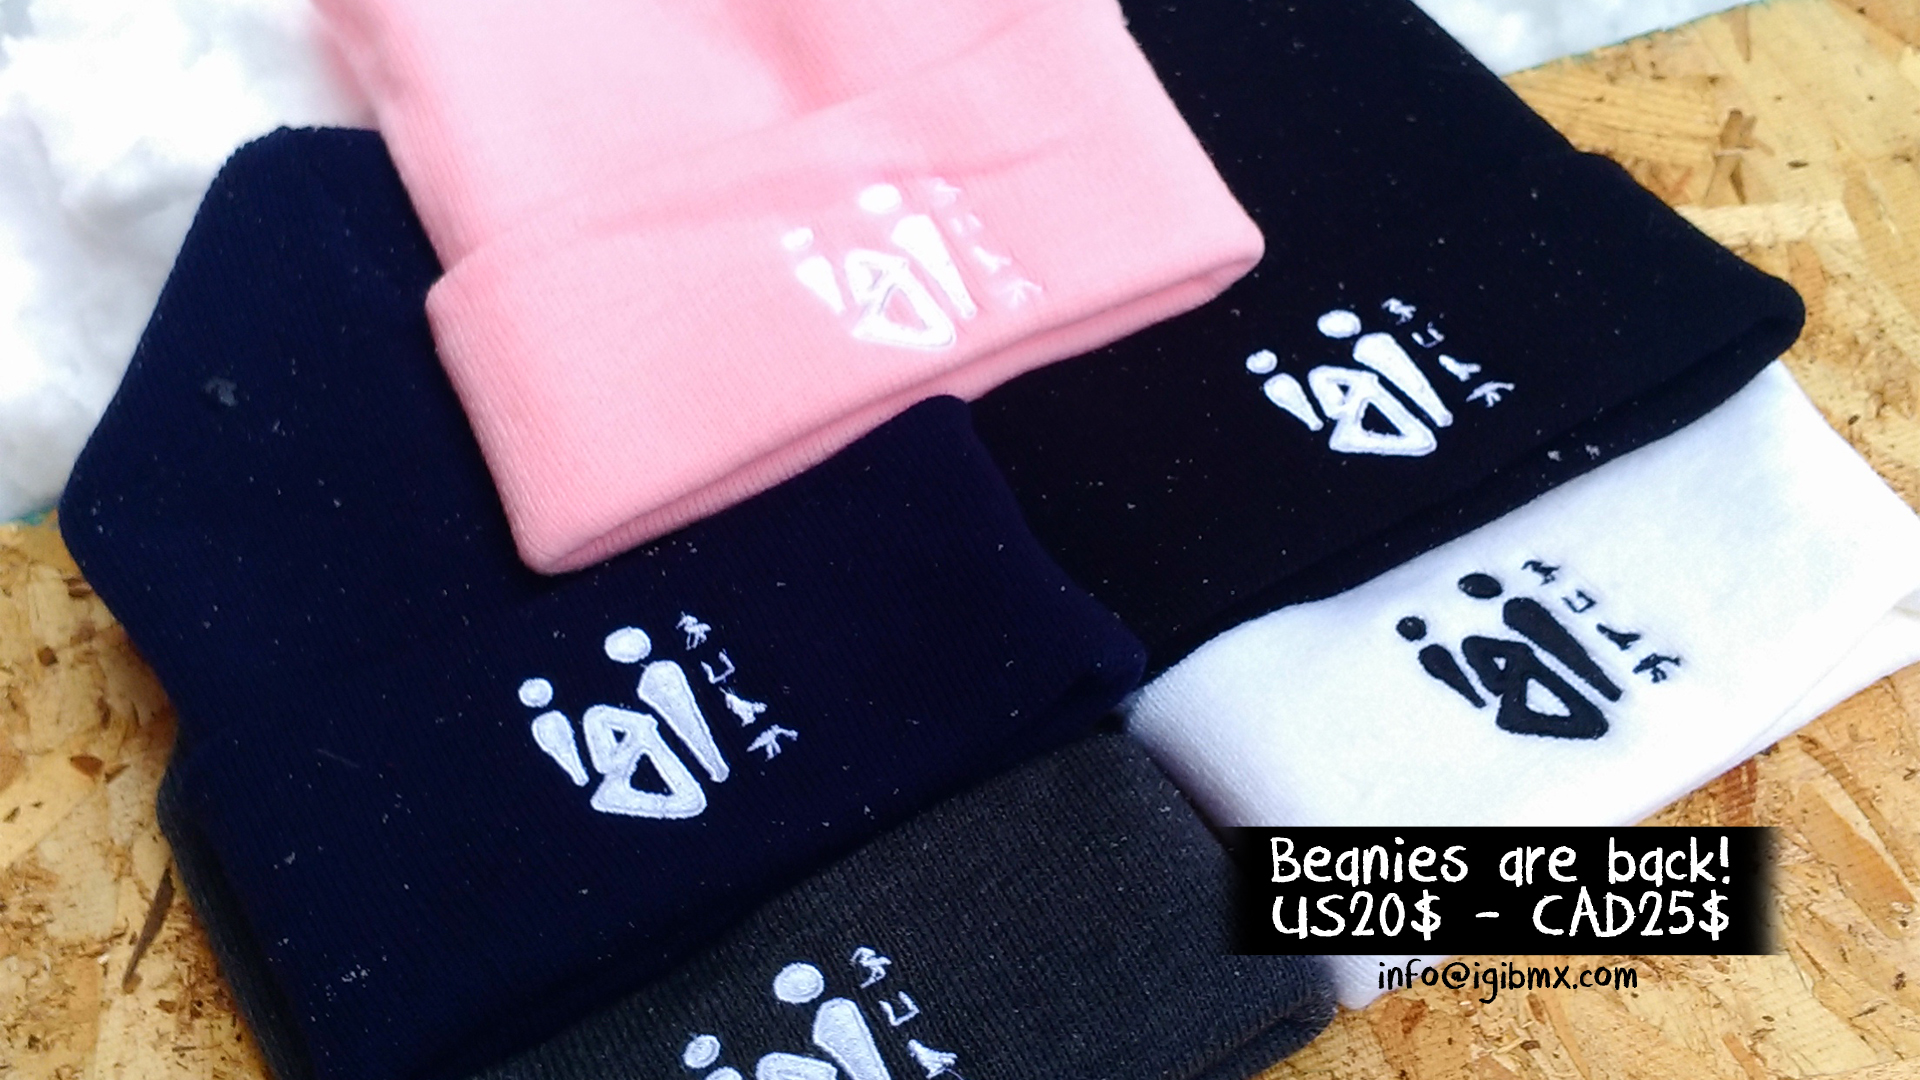 beanies for front page